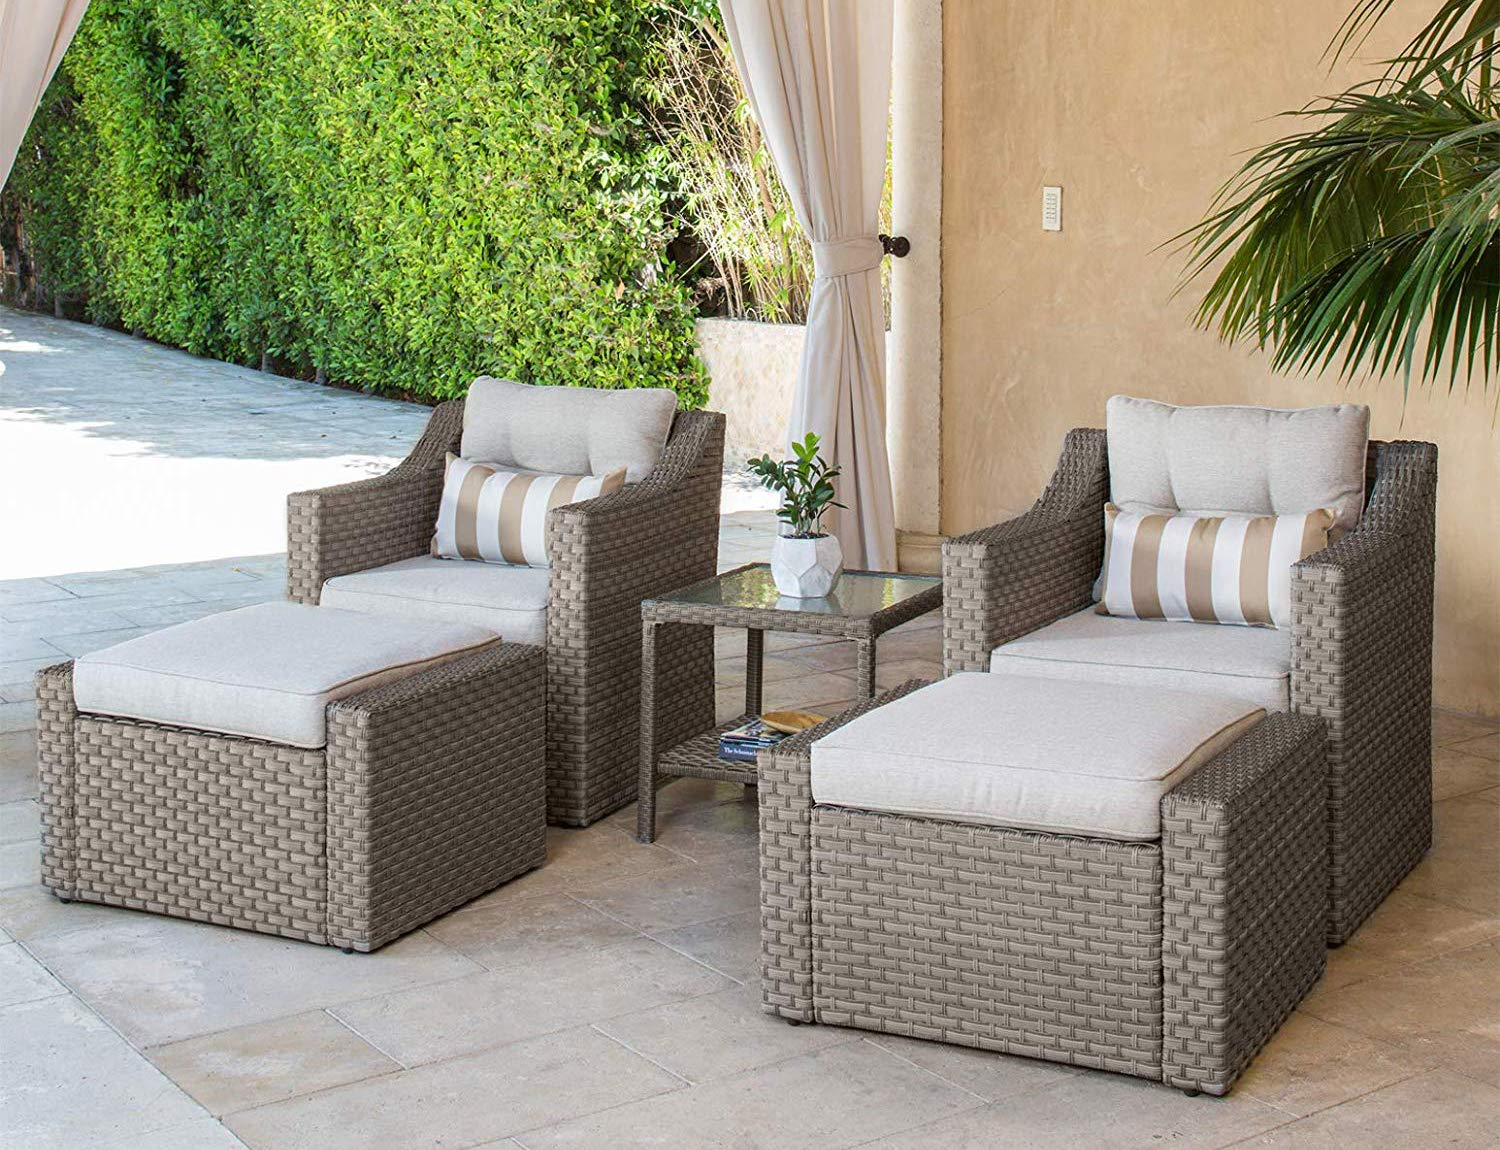 SOLAURA Patio Sofa Sets 5-Piece Outdoor Furniture Set Gray Wicker Lounge Chair Ottoman with Neutral Beige Olefin Fiber Cushions Glass Coffee Side Table